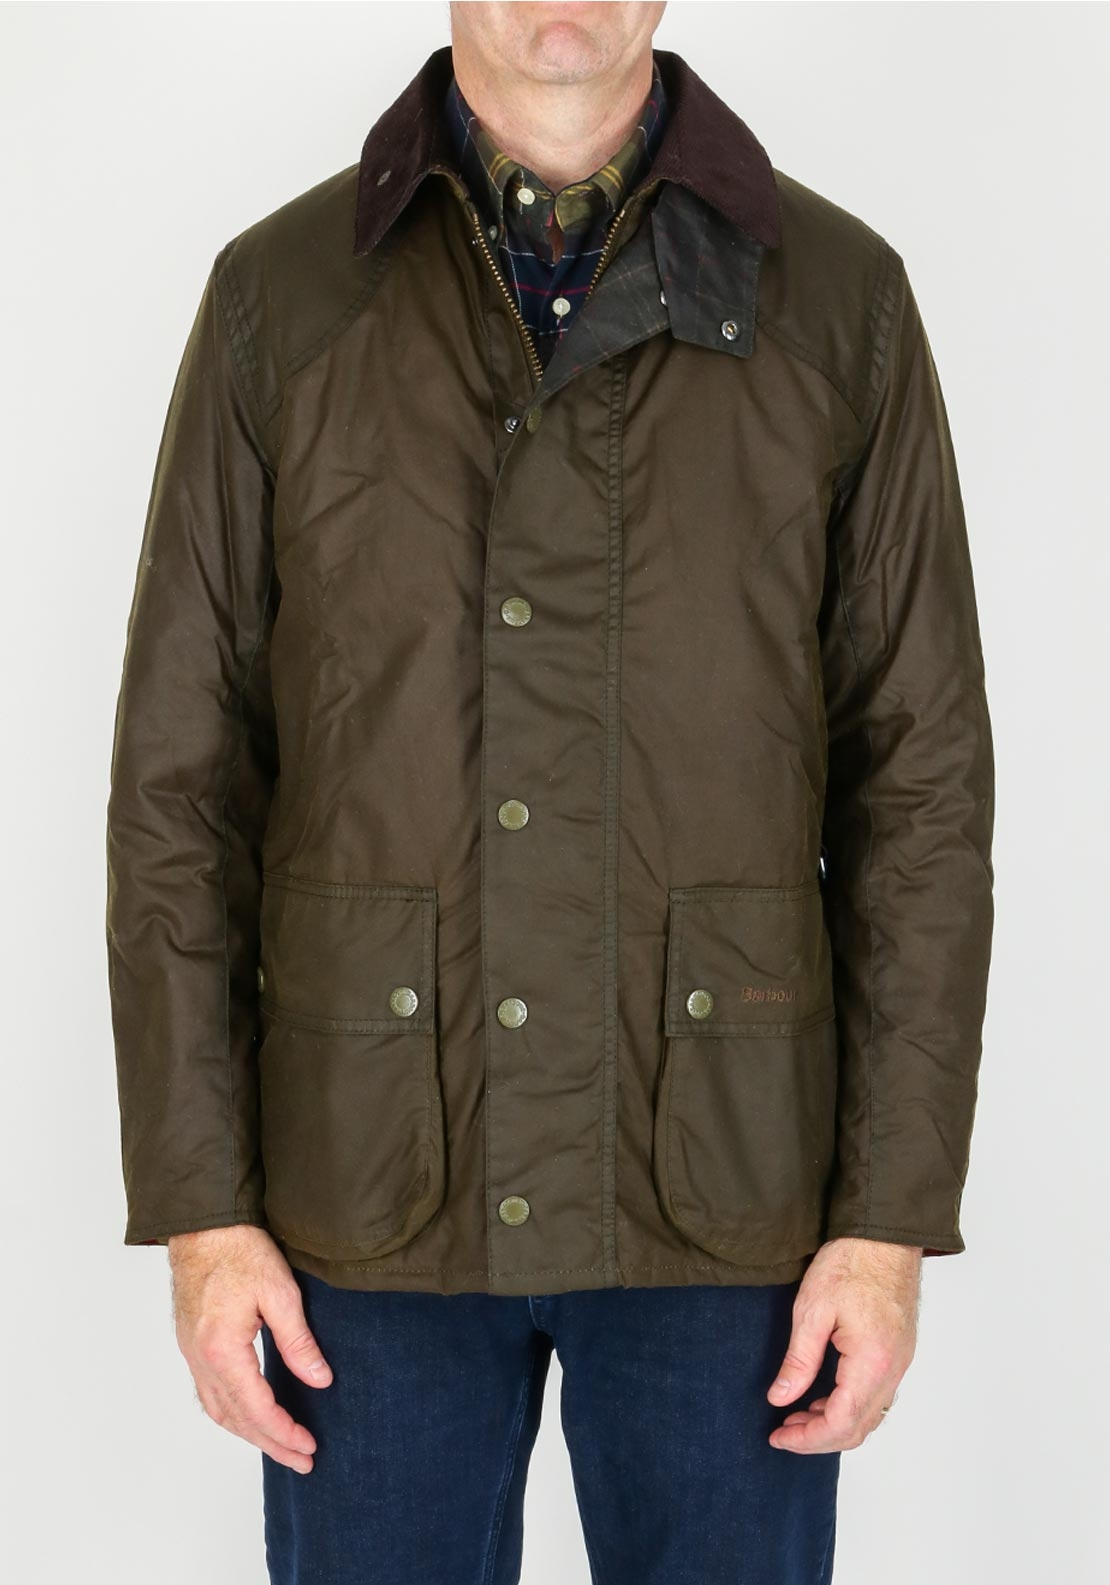 Barbour Mens Digby Waxed Jacket Olive Green